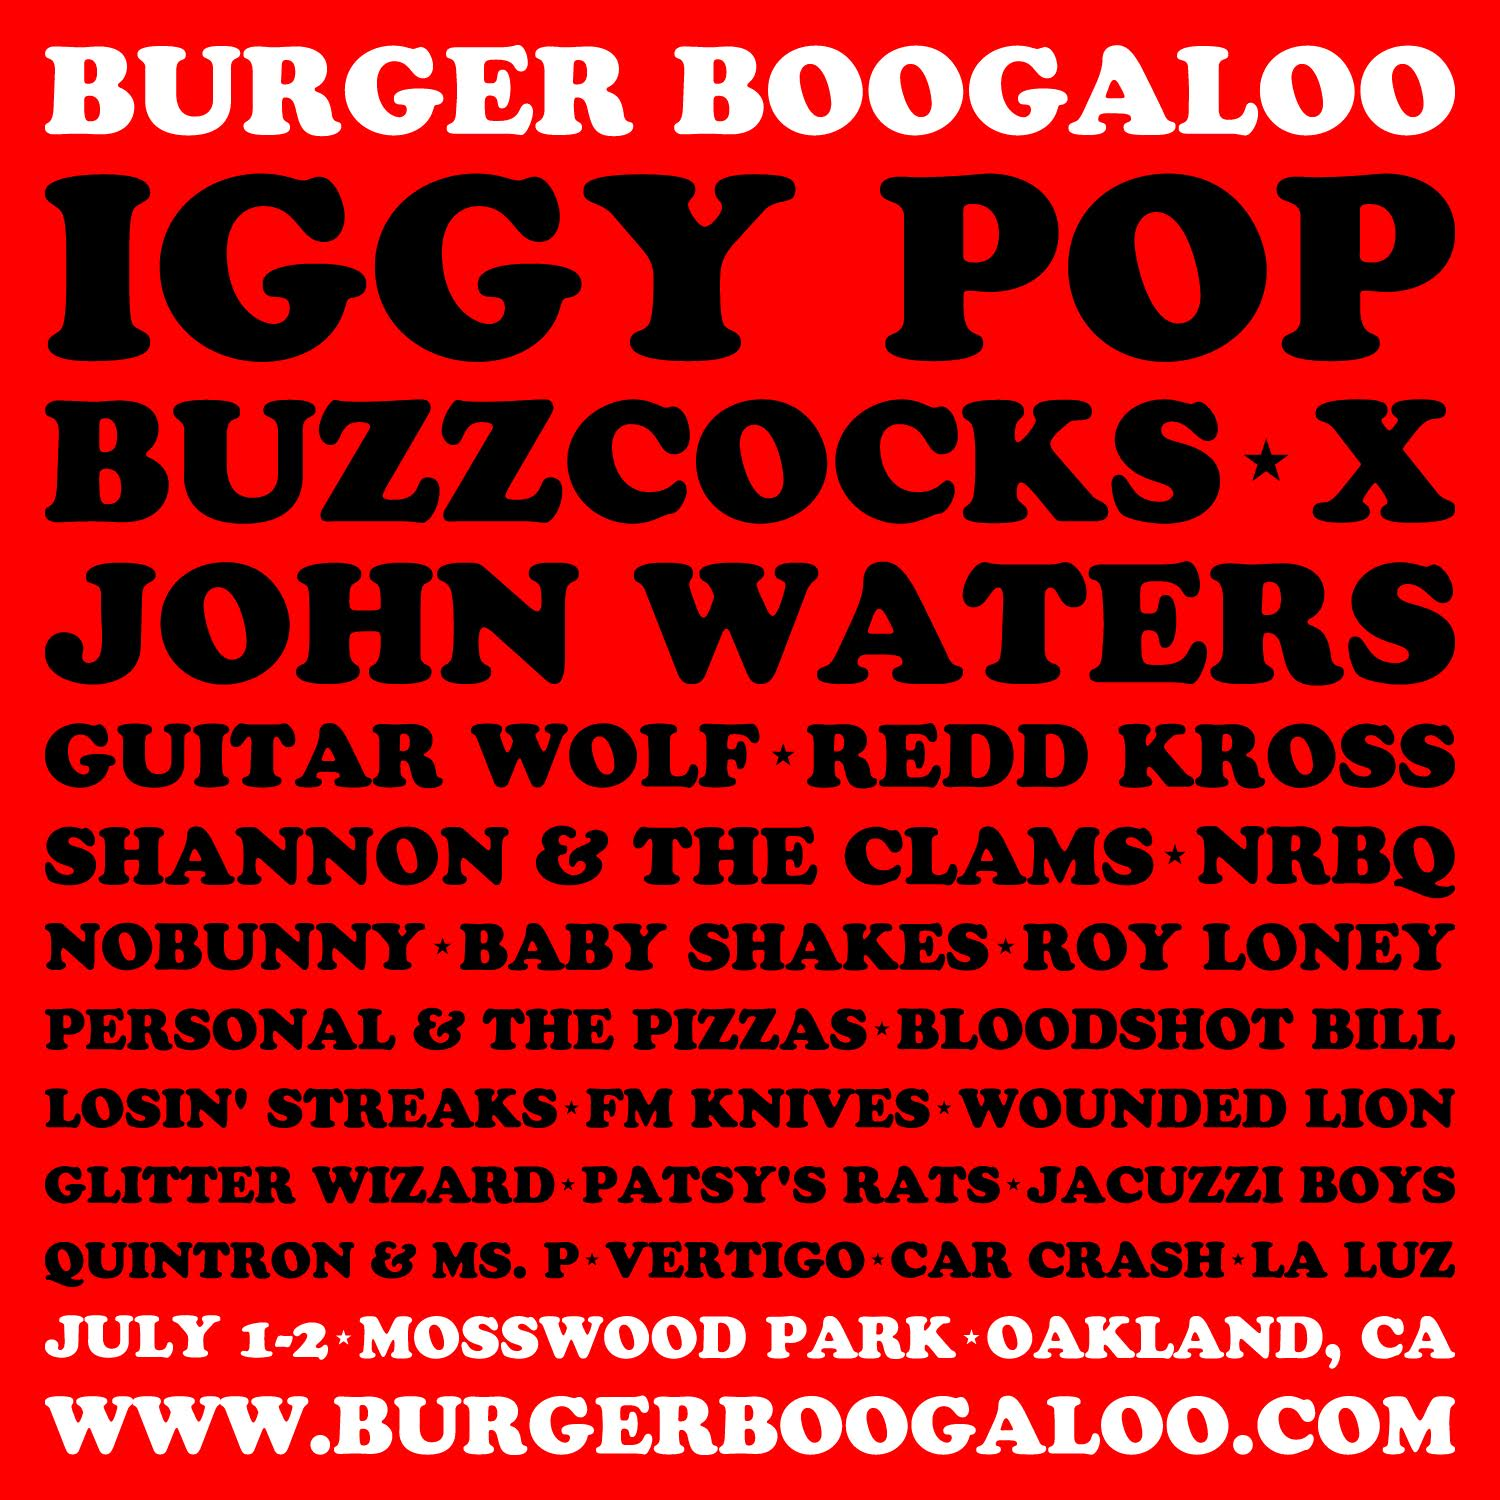 Burger Boogaloo